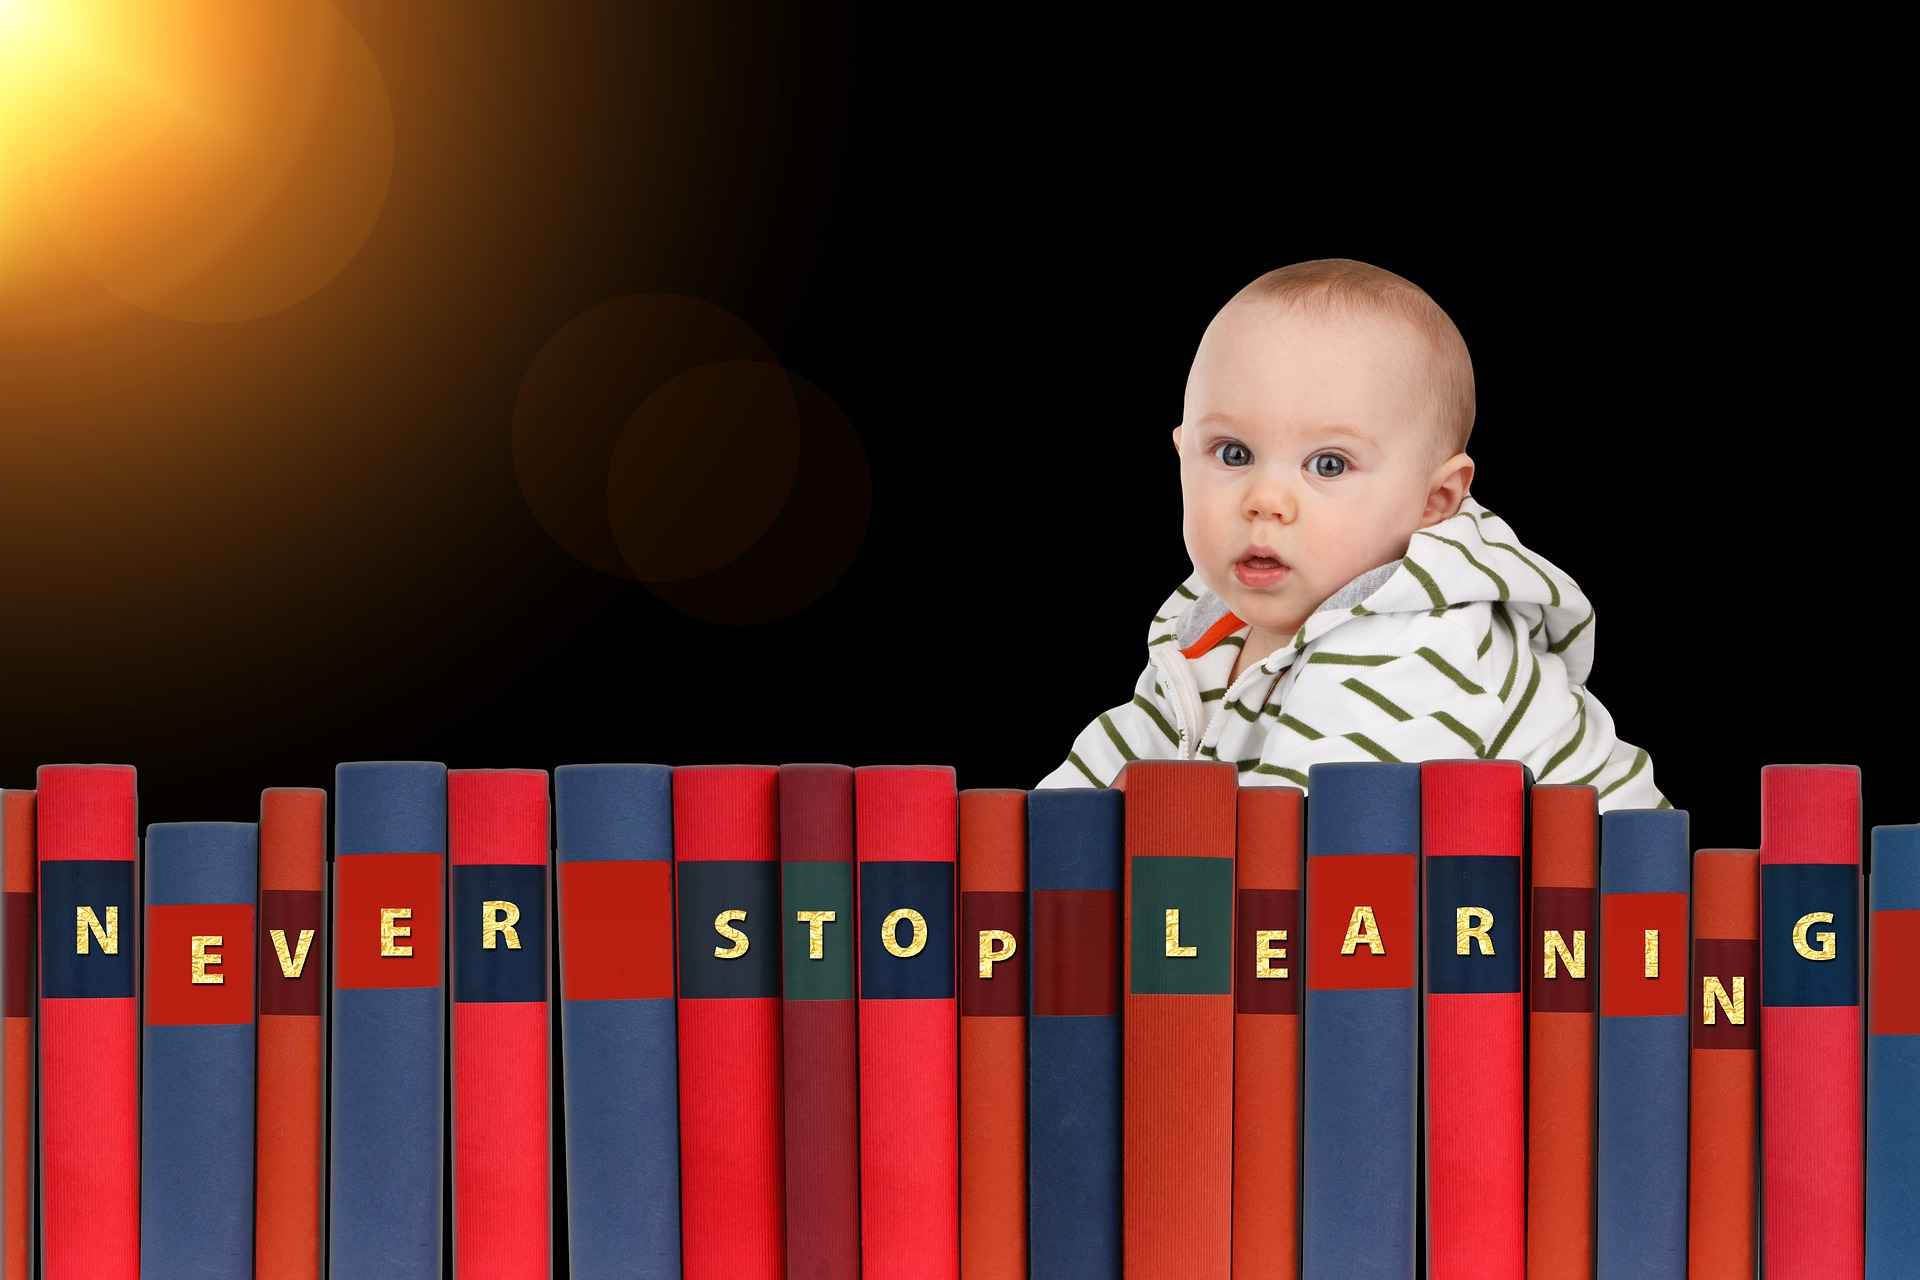 http://www.huffingtonpost.com/jocelyn-kelley/10-life-lessons-you-can-learn-from-children_b_5014547.html